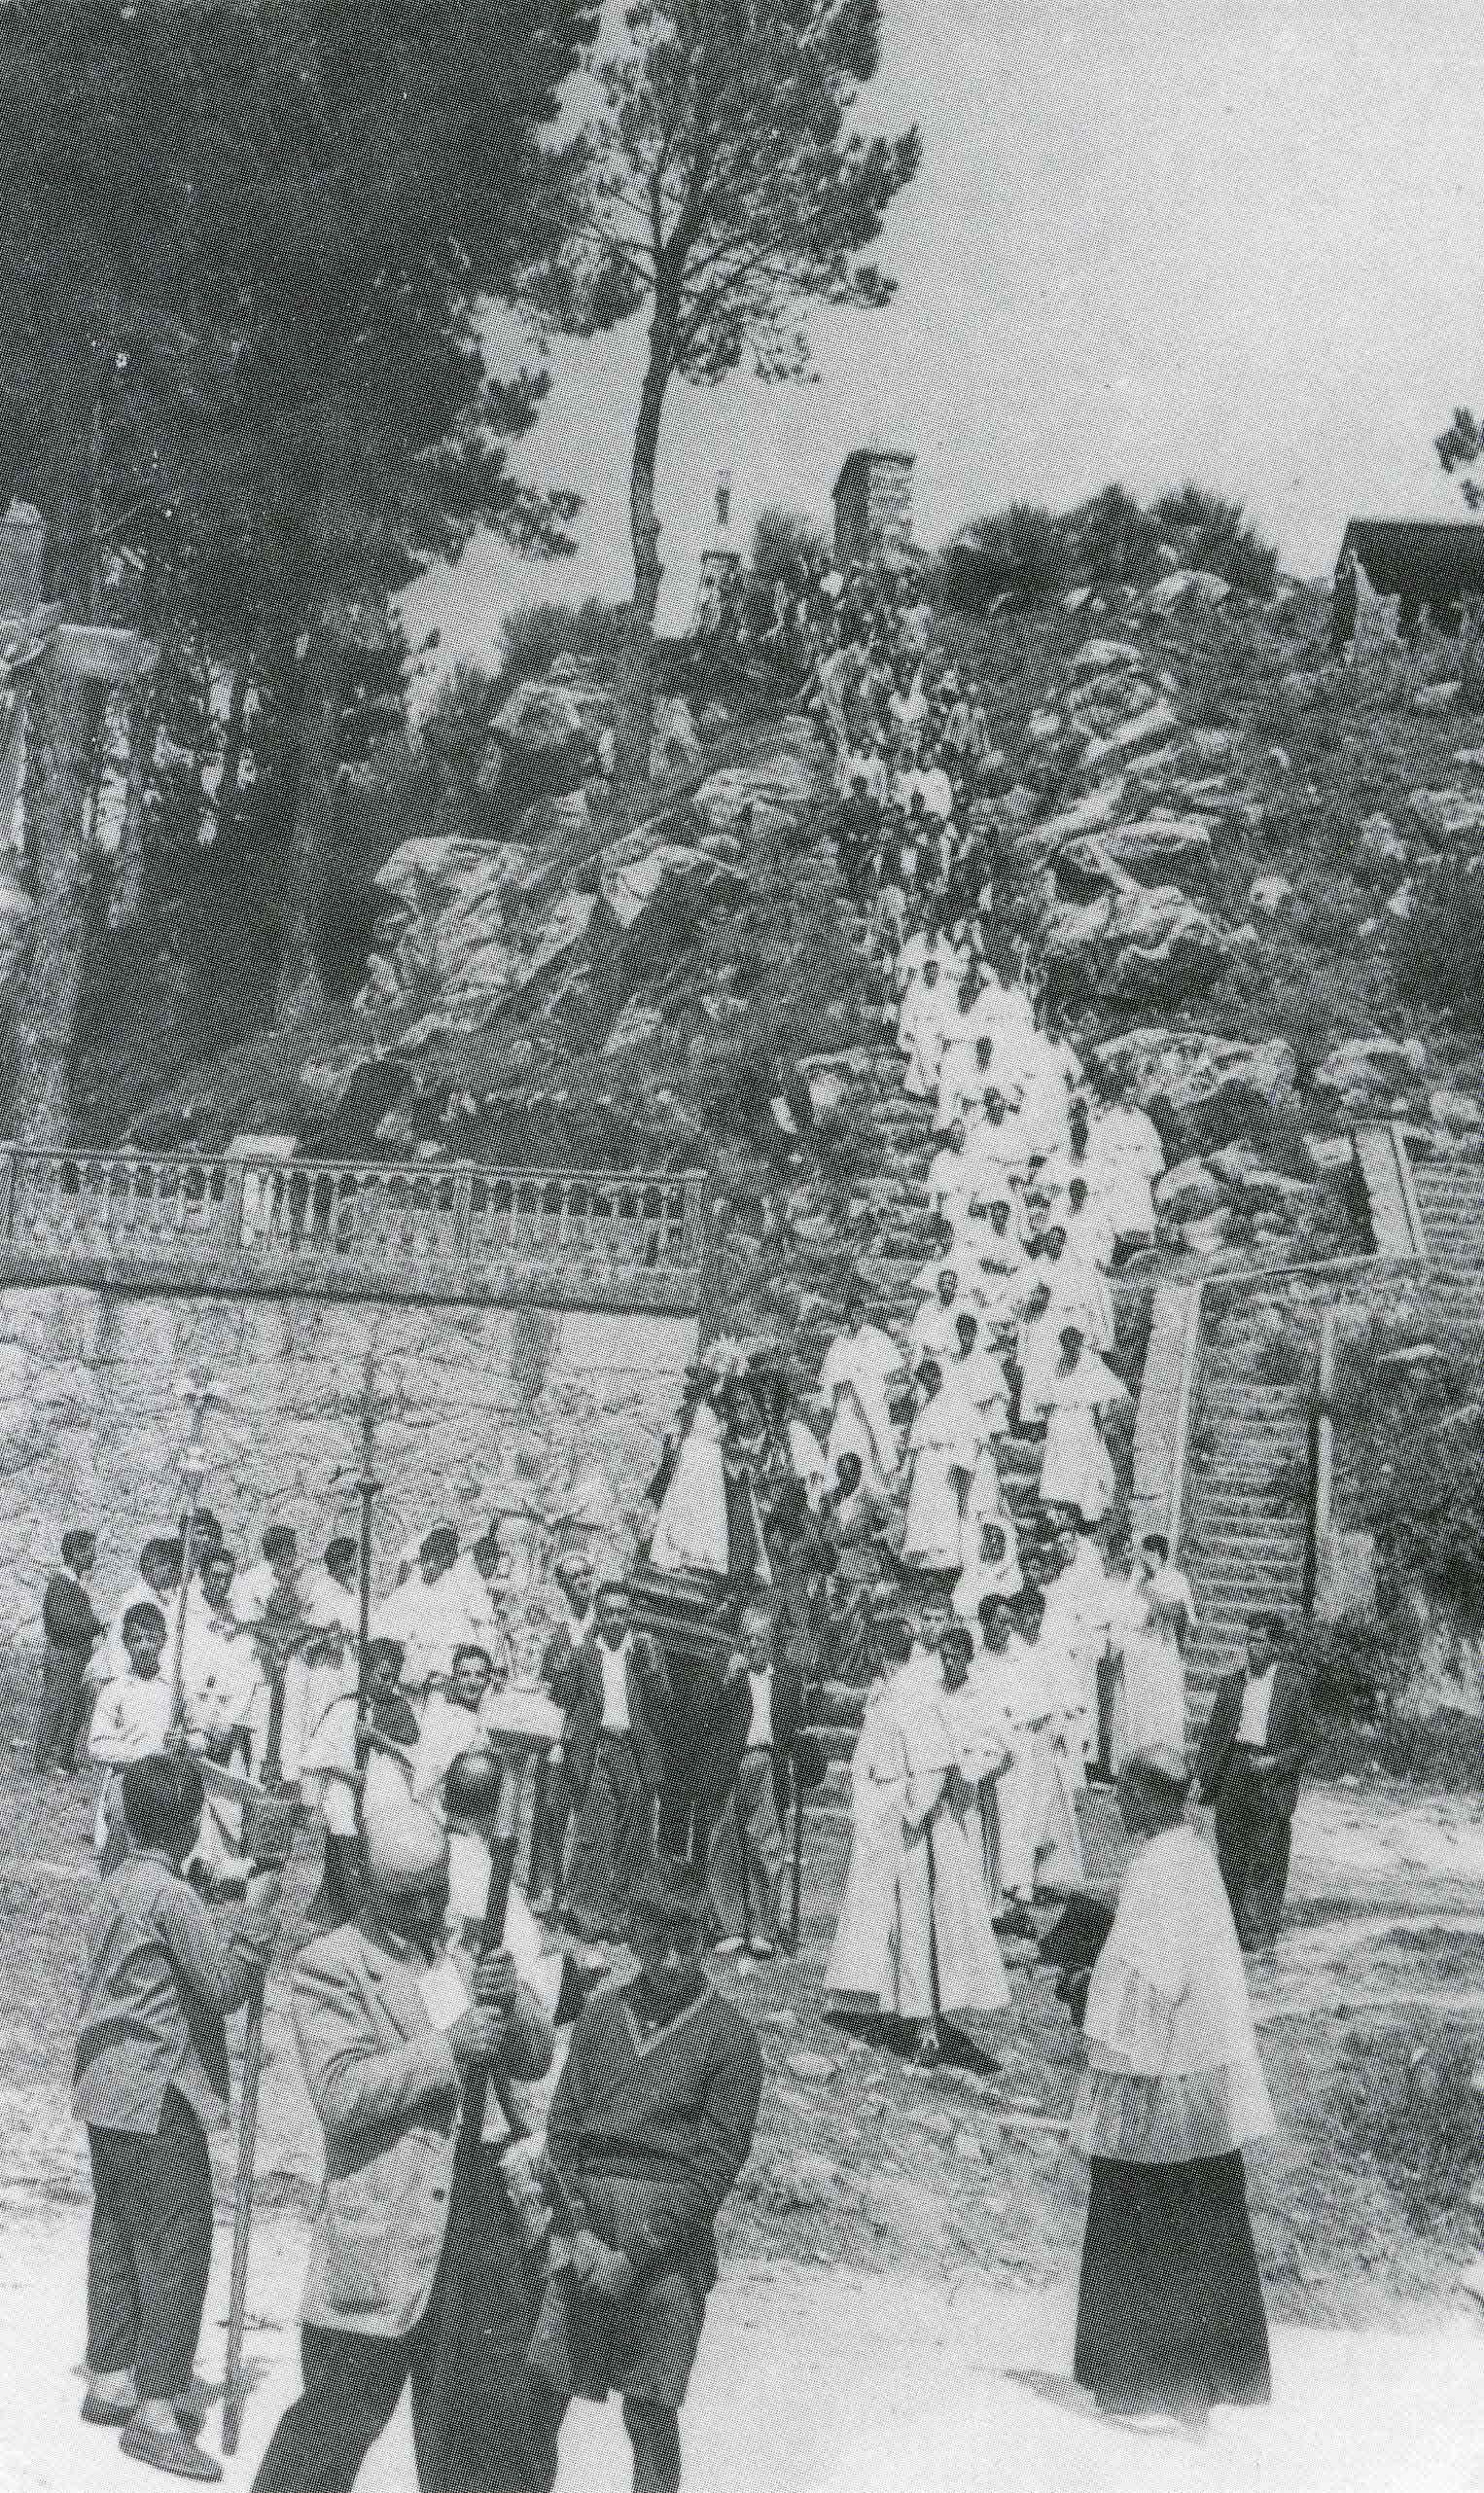 A centenary procession in Santa Trega